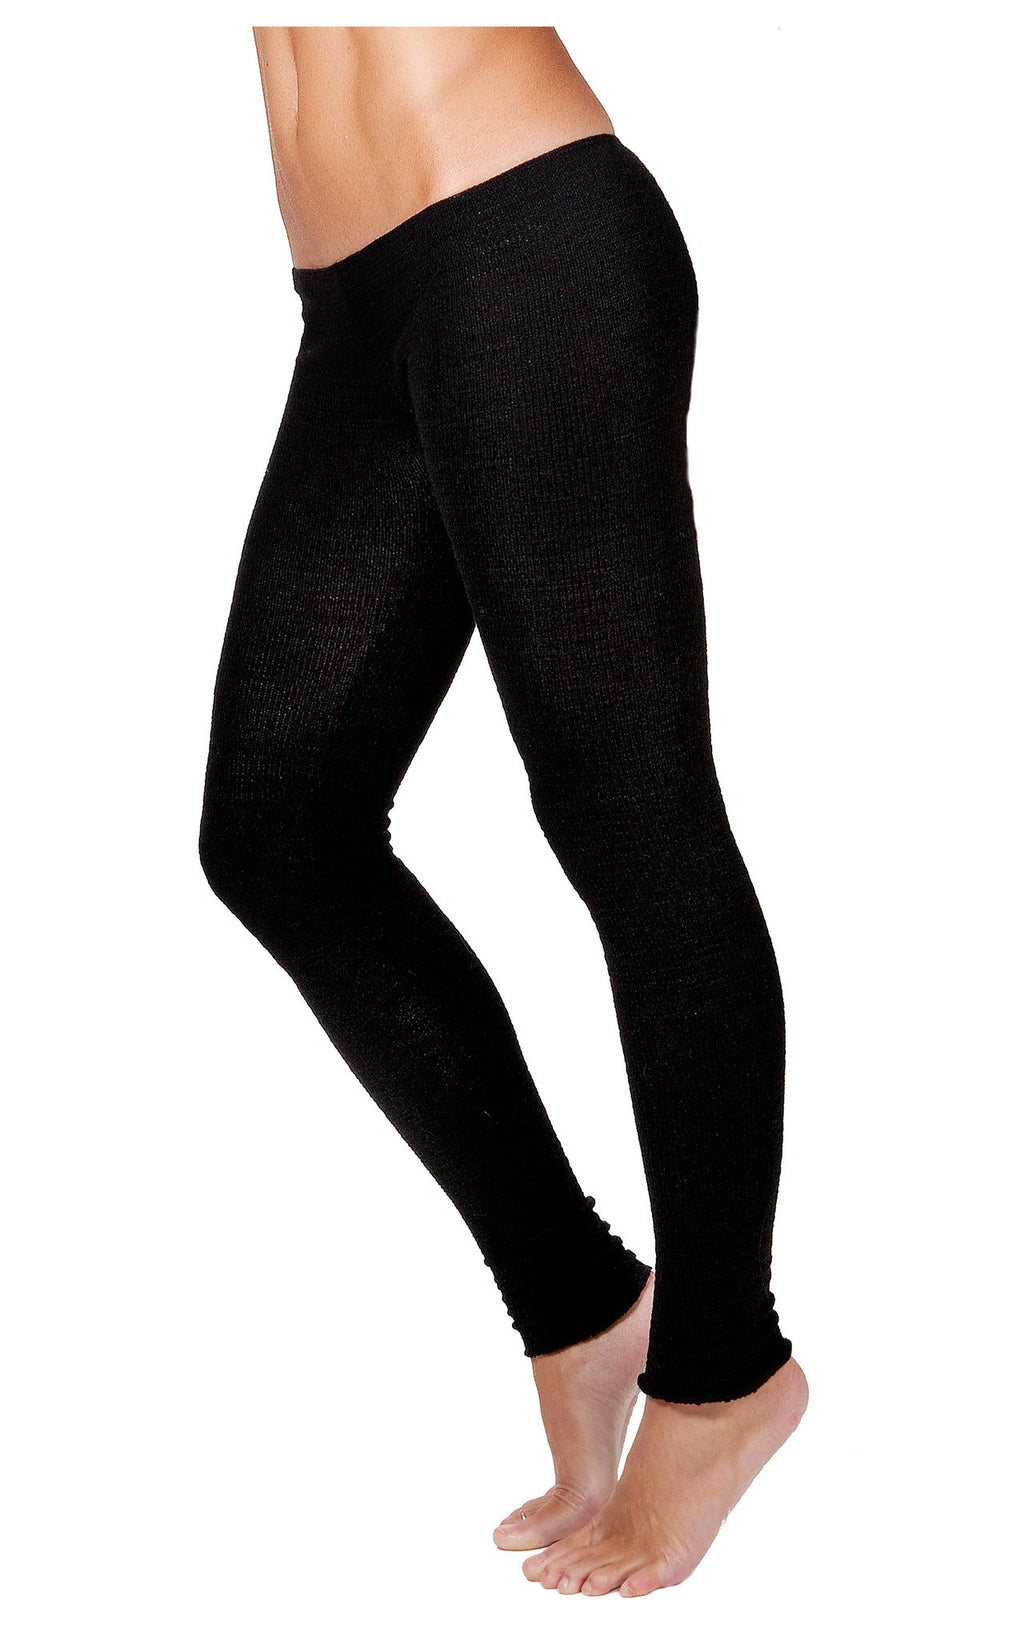 Dance Leggings / Yoga Tights / Sexy Low Rise Stretch Knit KD dance NY Unique Cozy & Warm Made In USA